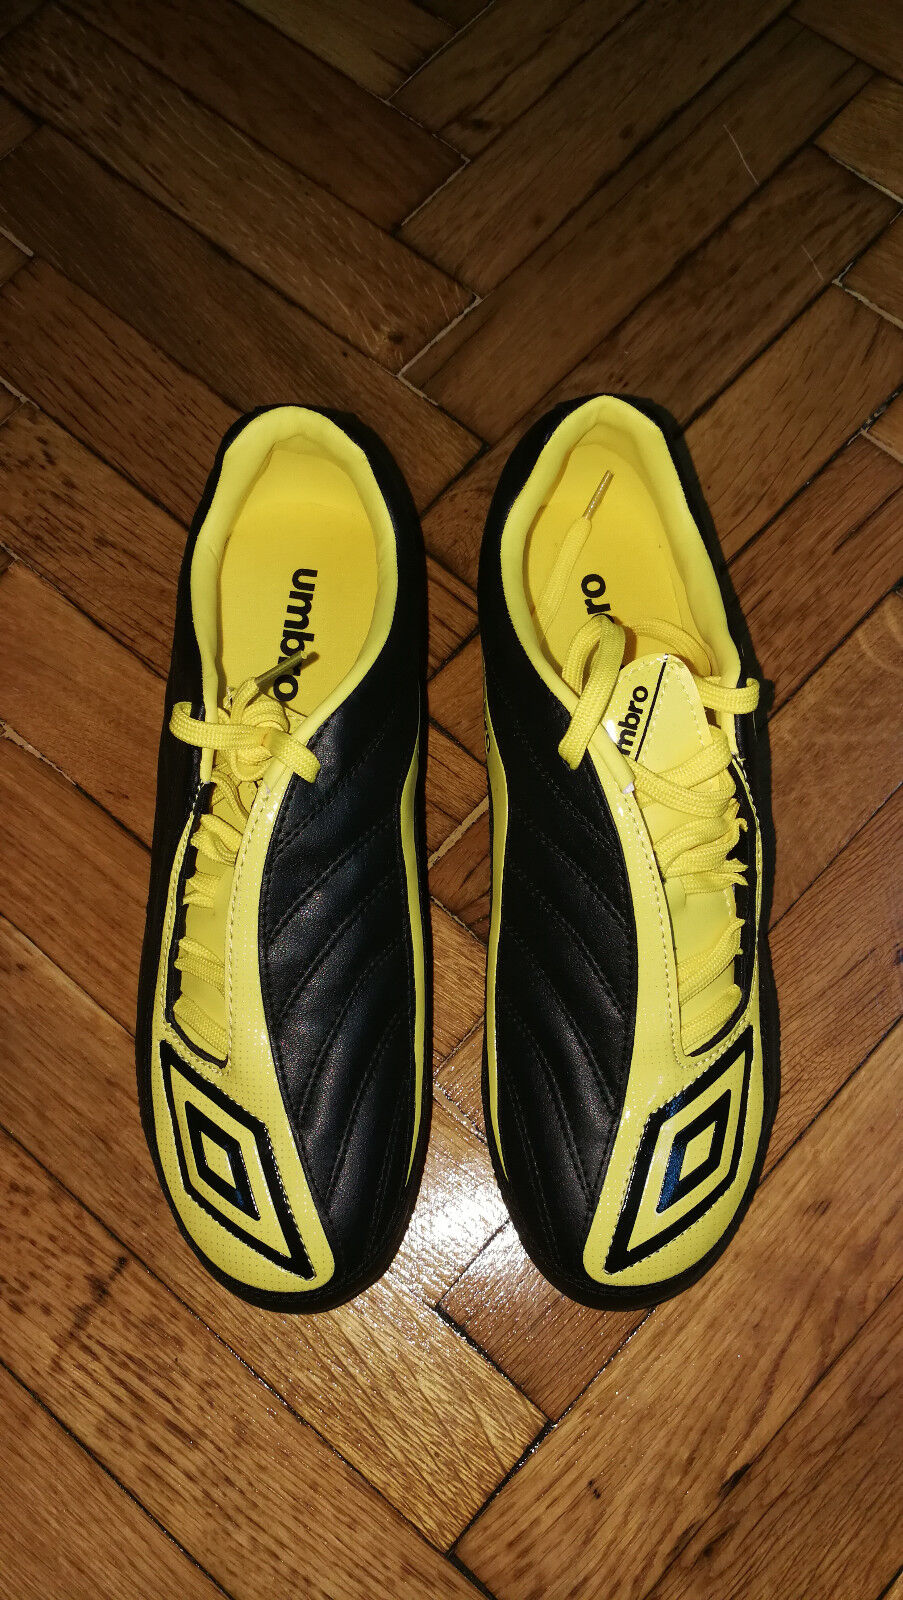 Umbro New Swerve Matt Soccer Schuhes HG Football Stiefel RARE New Umbro 80849c